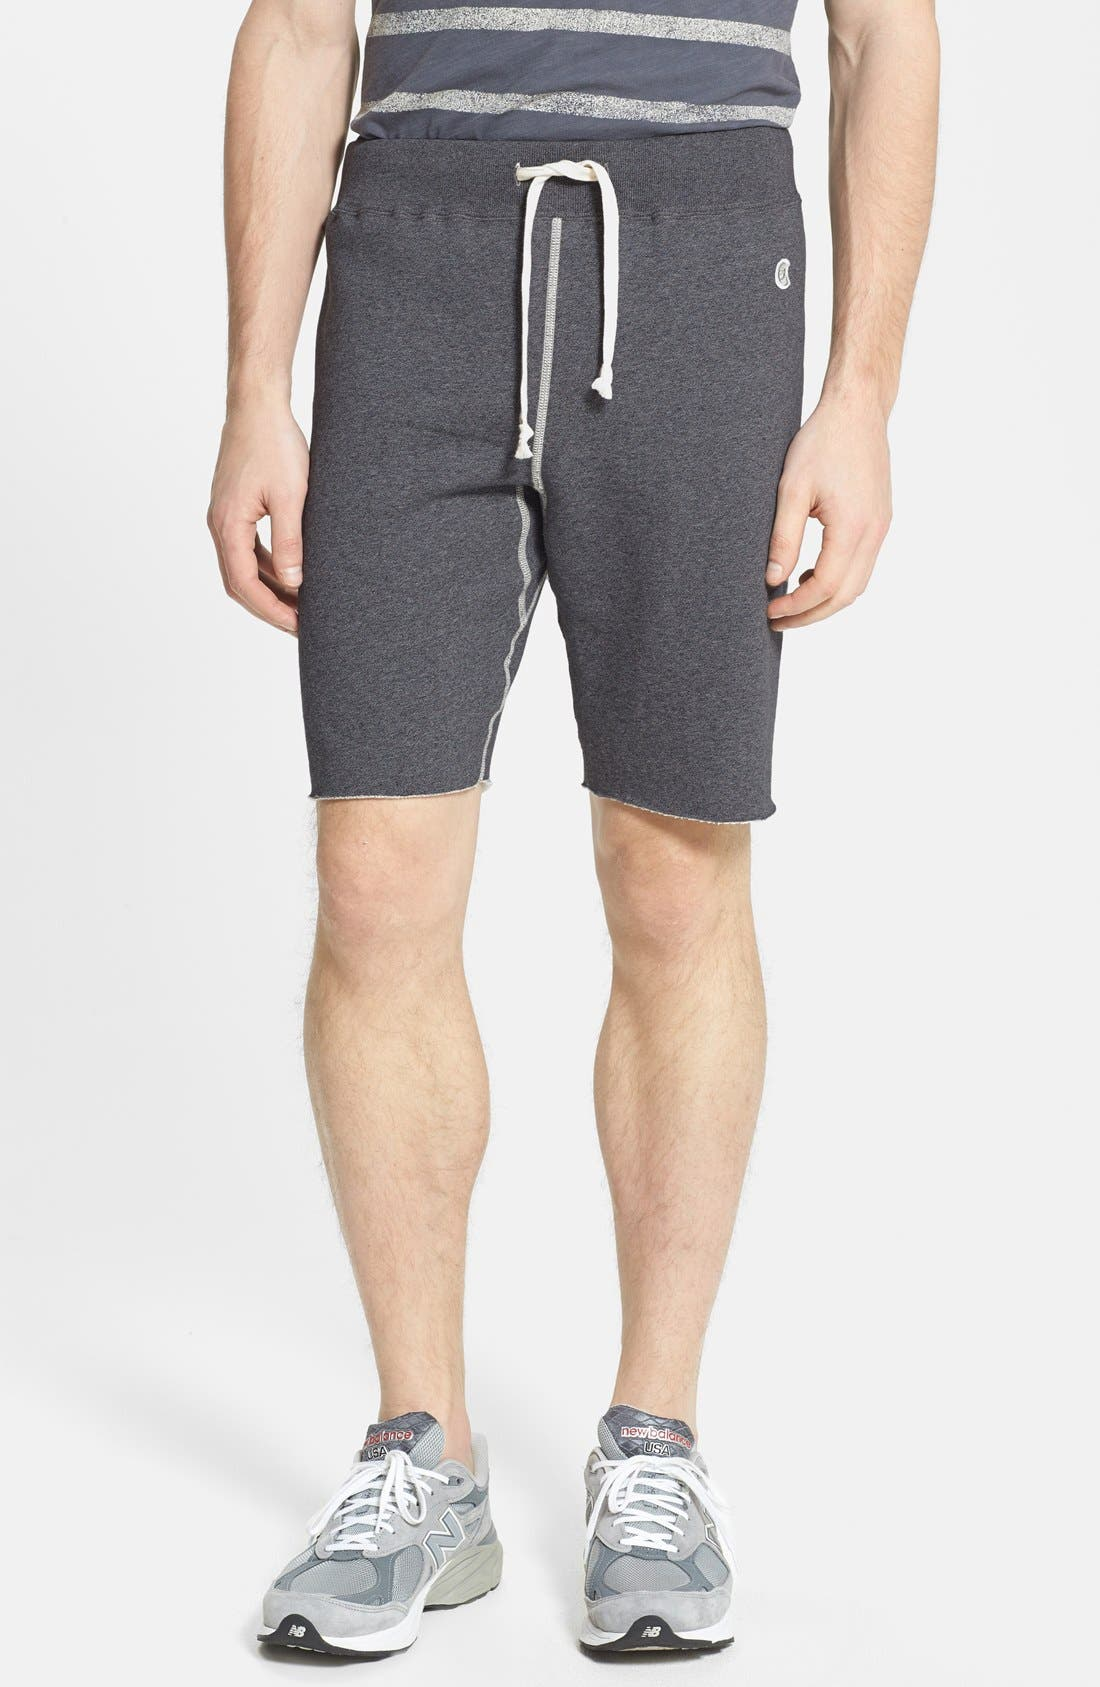 Alternate Image 1 Selected - Todd Snyder + Champion Knit Cotton Shorts